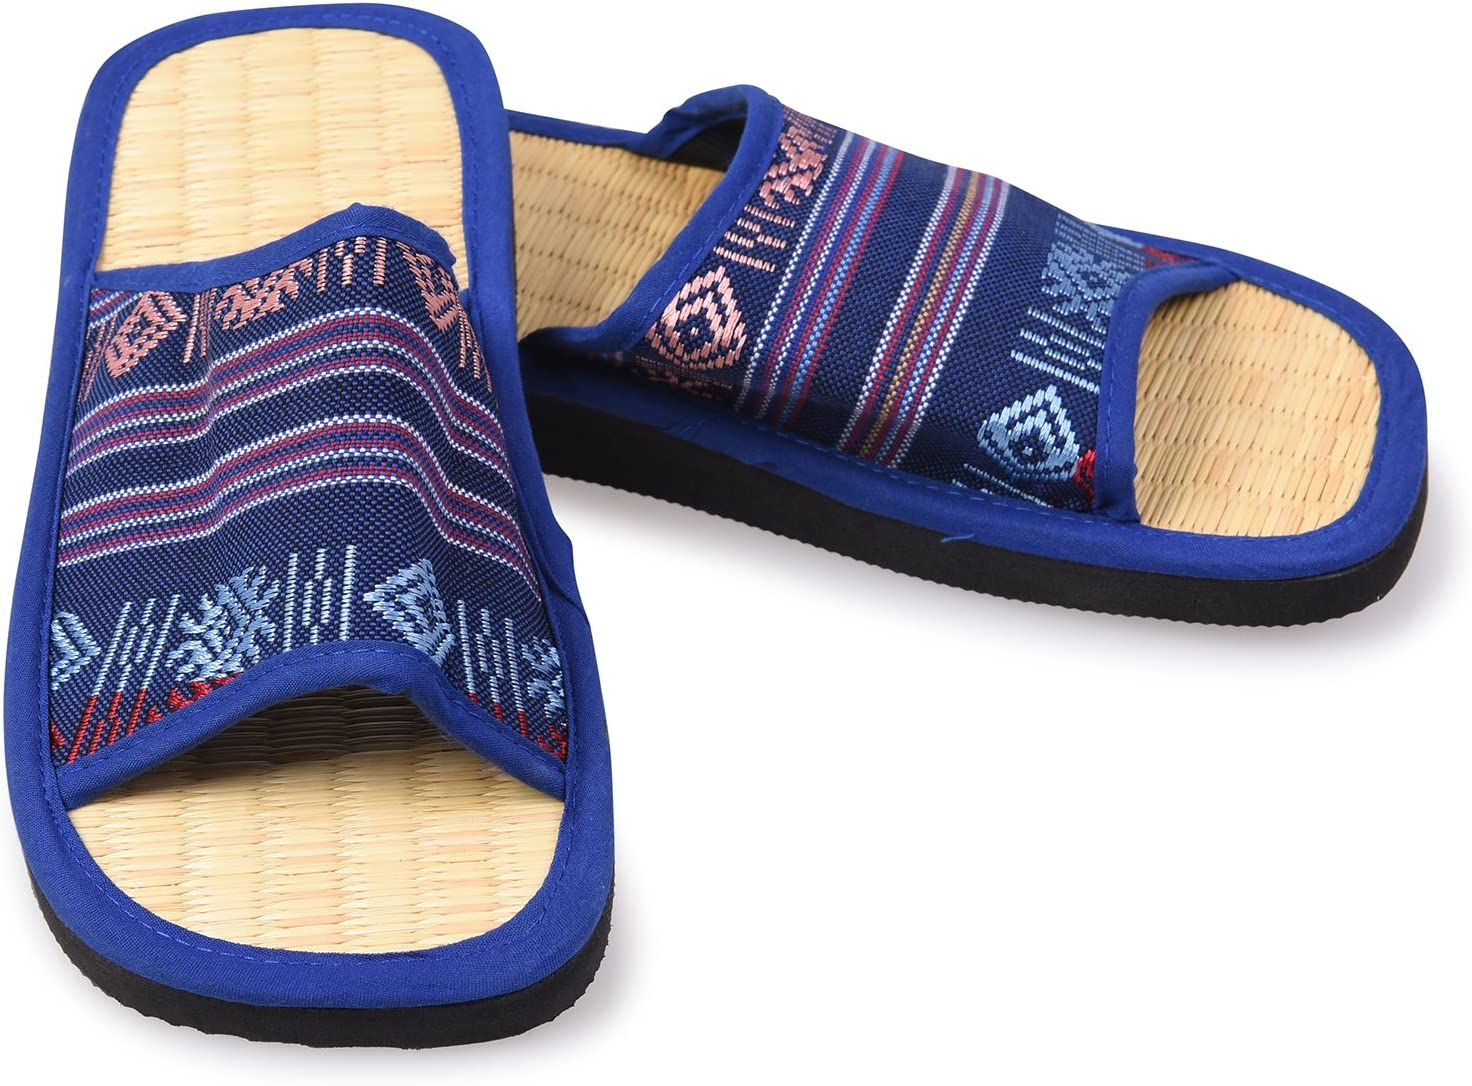 Yoga Studio Cannelle Femme Chaussons